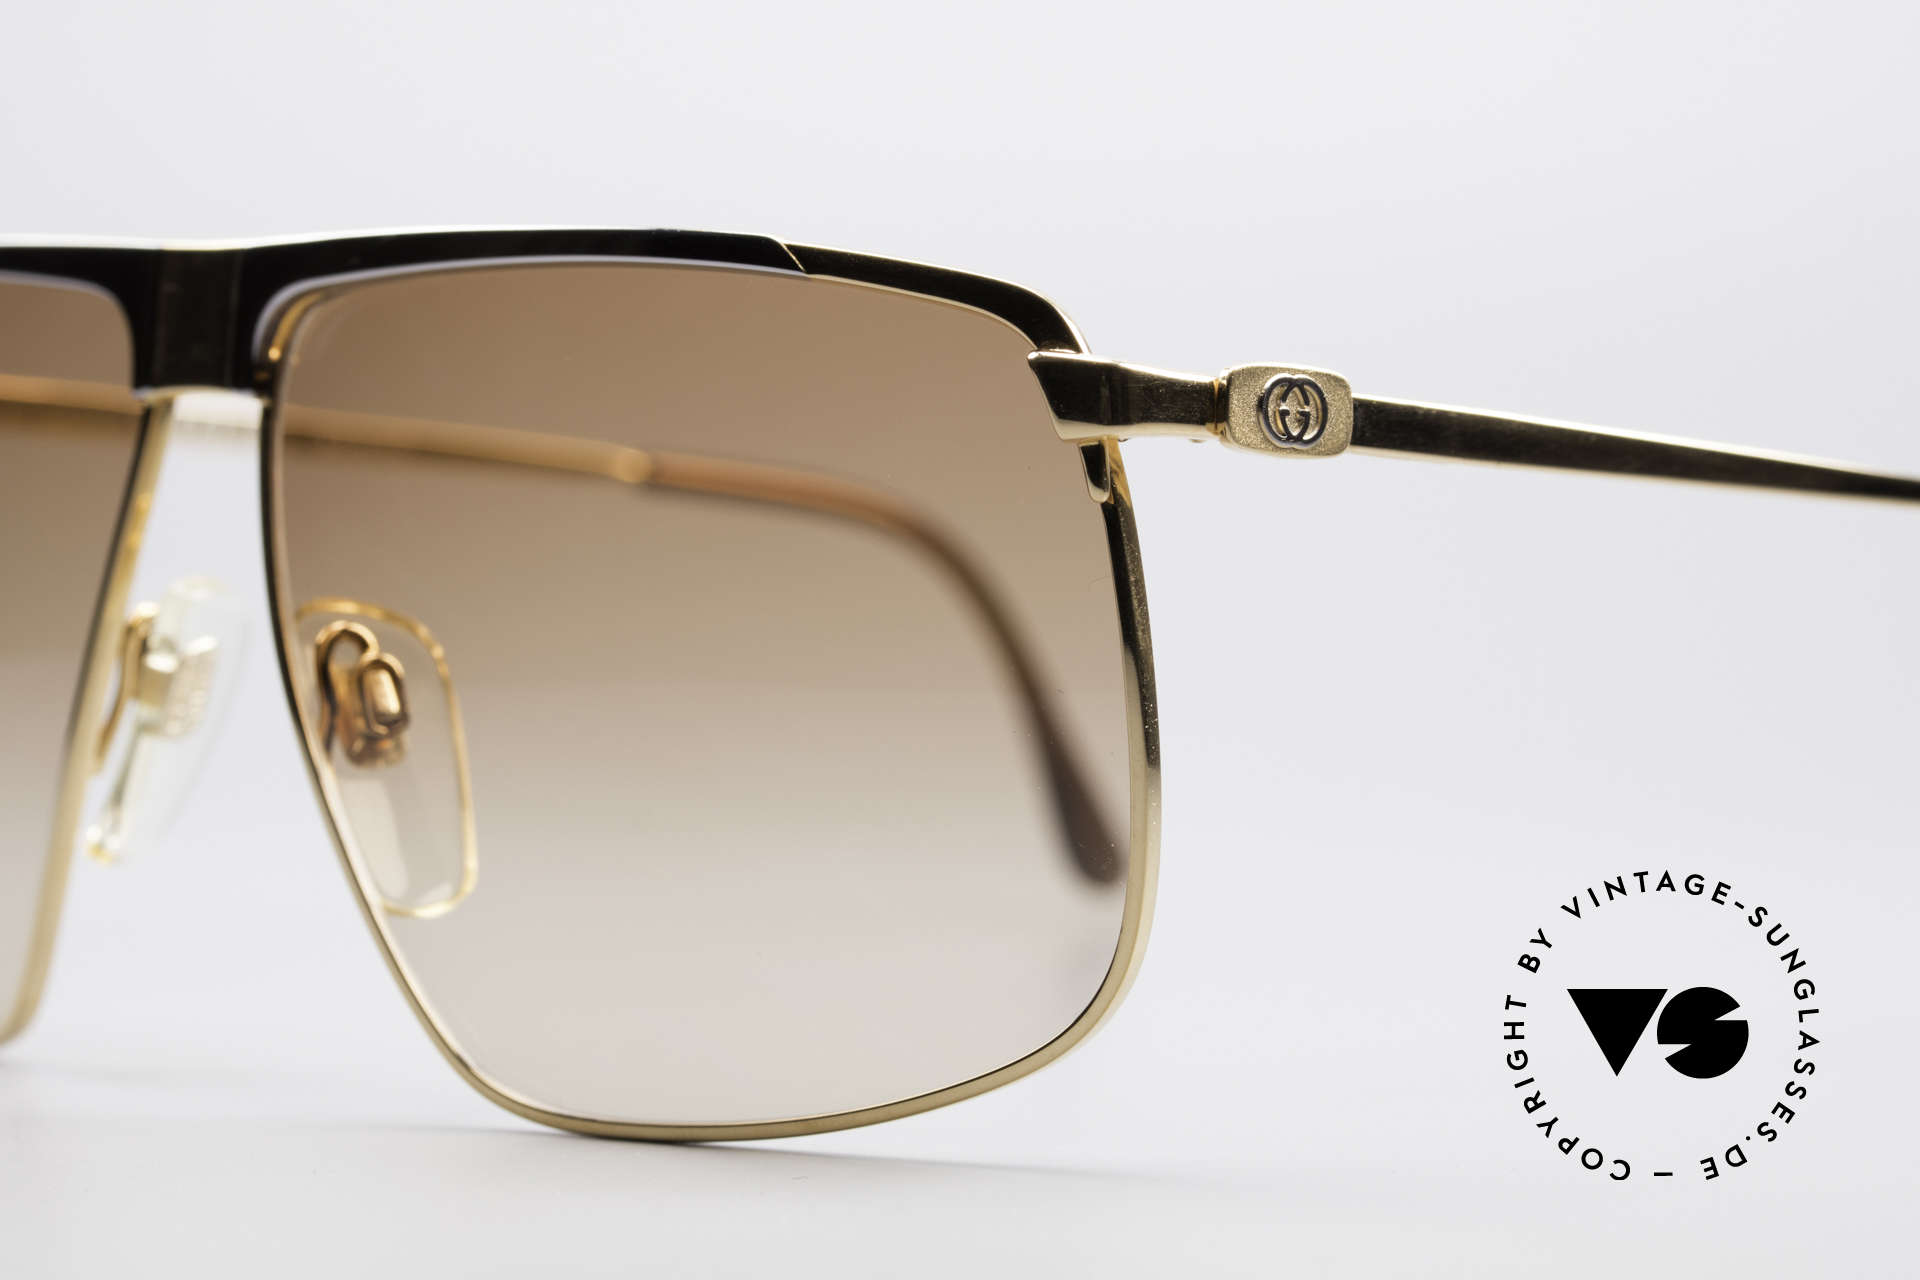 Gucci GG40 22kt Gold-Plated Sunglasses, unworn, NOS (like all our vintage Gucci sunglasses), Made for Men